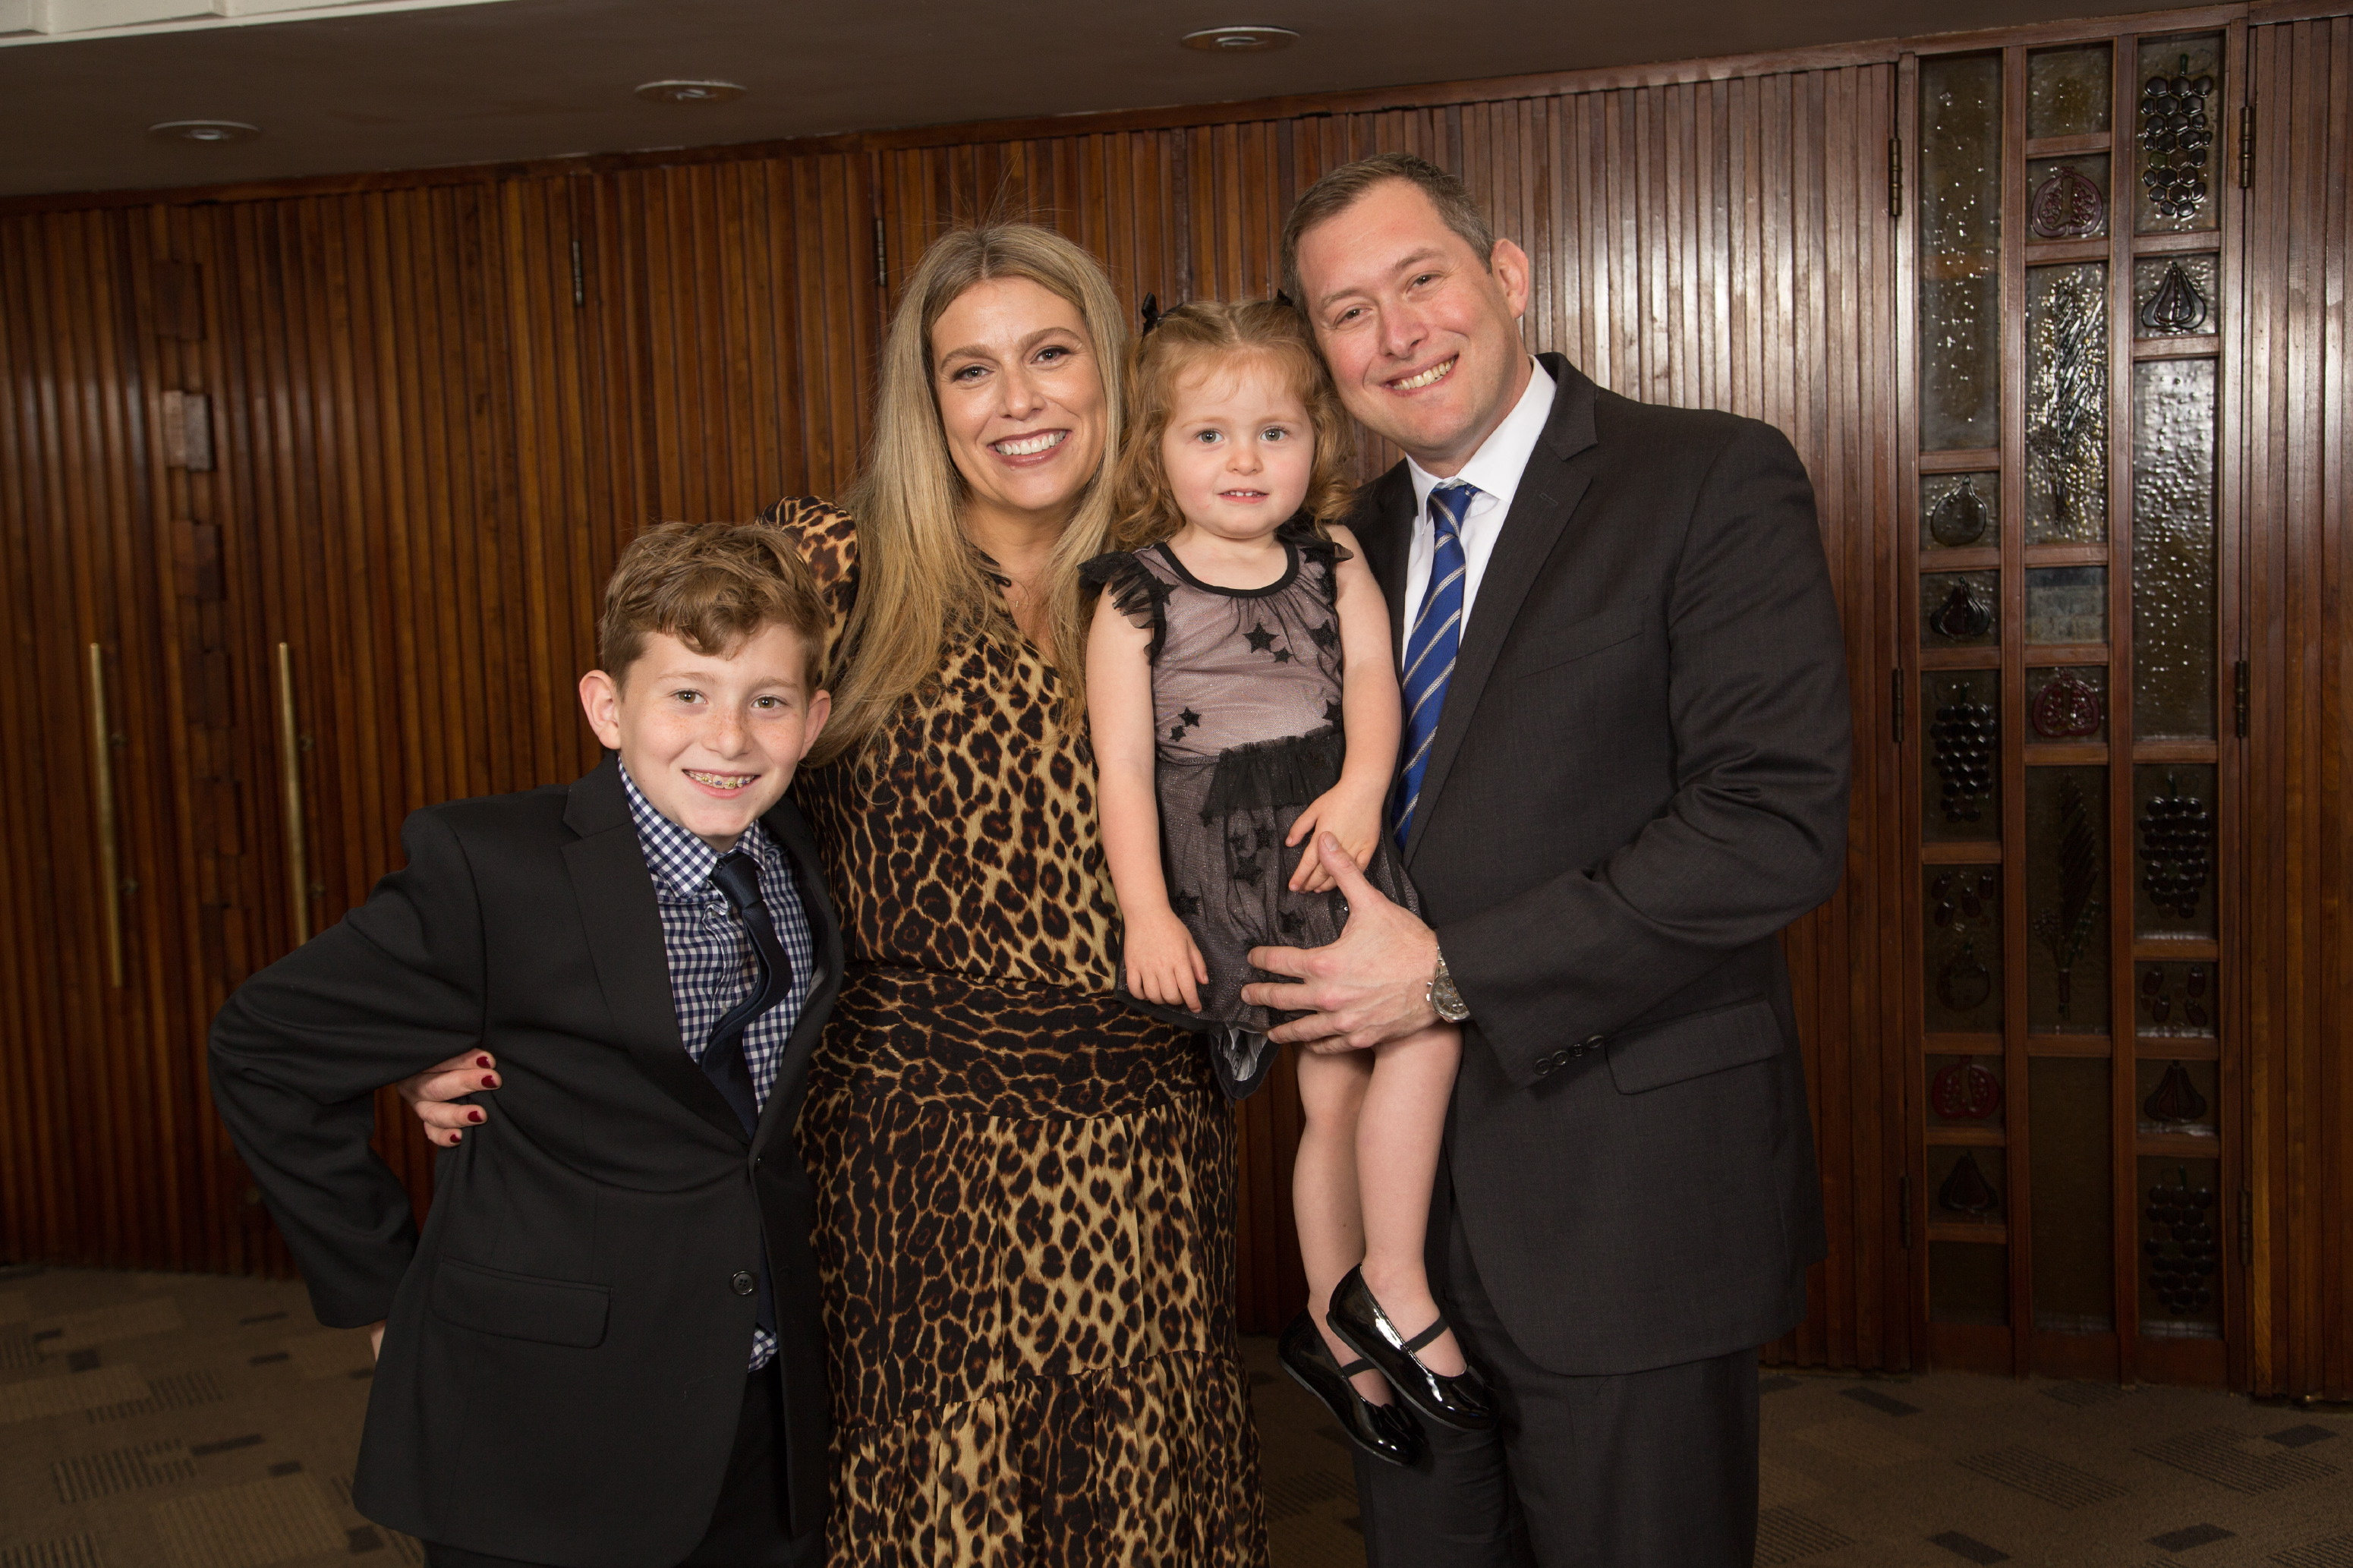 Honoree Craig Rutenberg with his wife Stephanie and their children